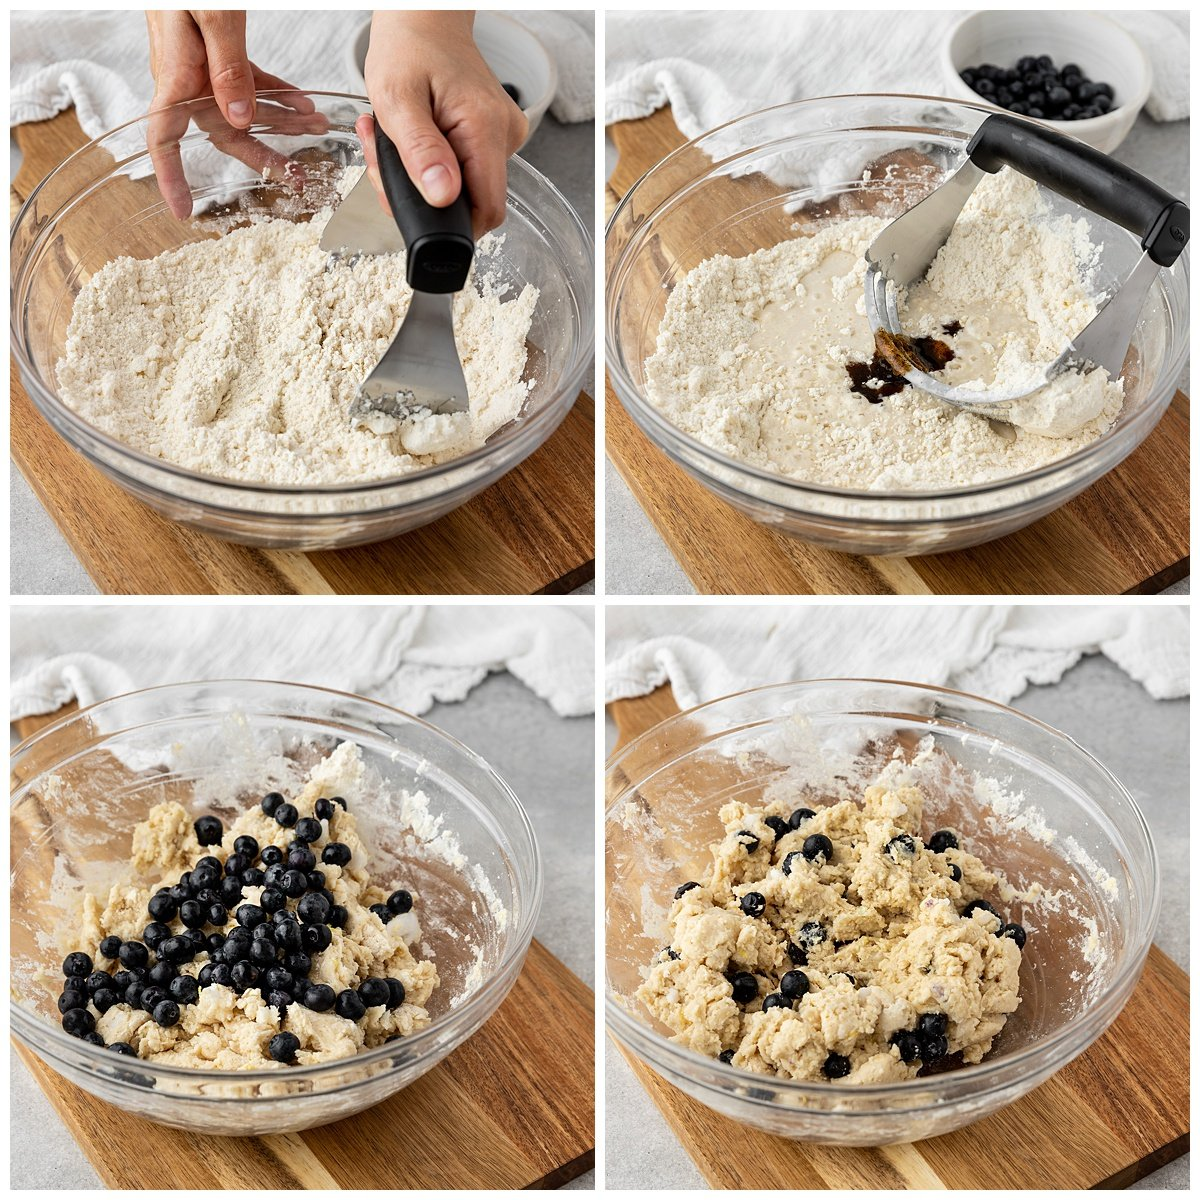 four pictures using pastry cutter to make blueberry scone dough